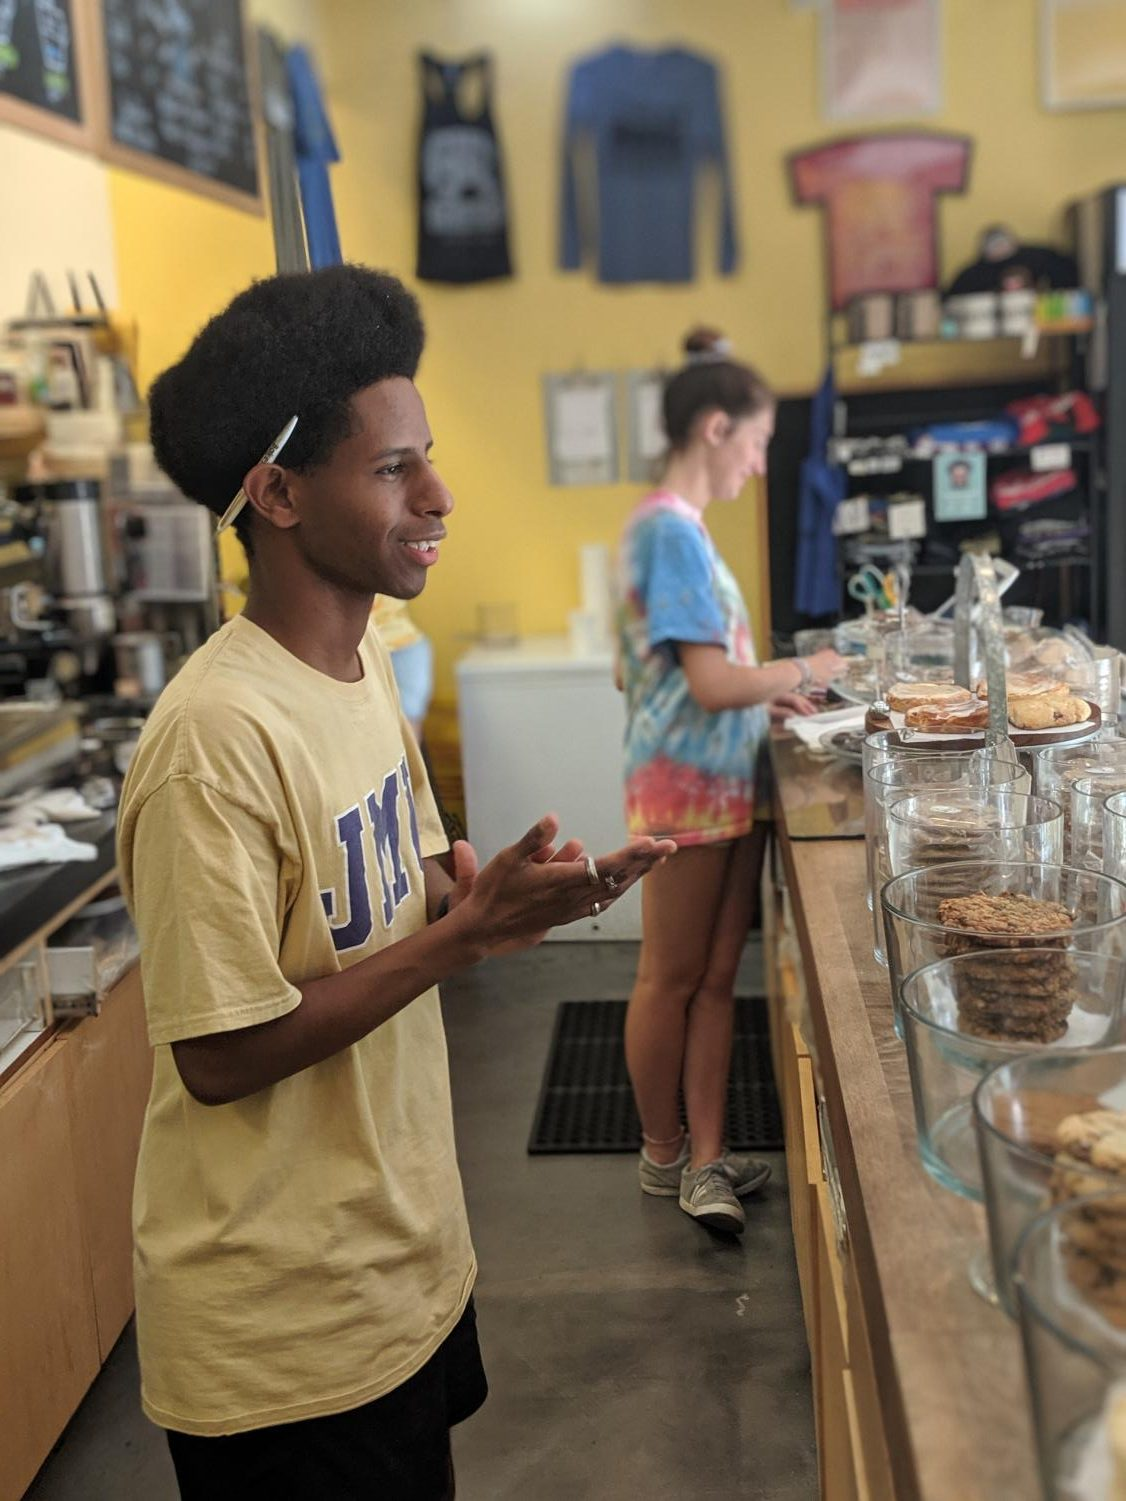 Washington-Liberty High School graduate Bemnet Negash greets one of Bakeshop's customers. Bakeshop shits usually consist of serving customers and prepping materials such as bags for use.